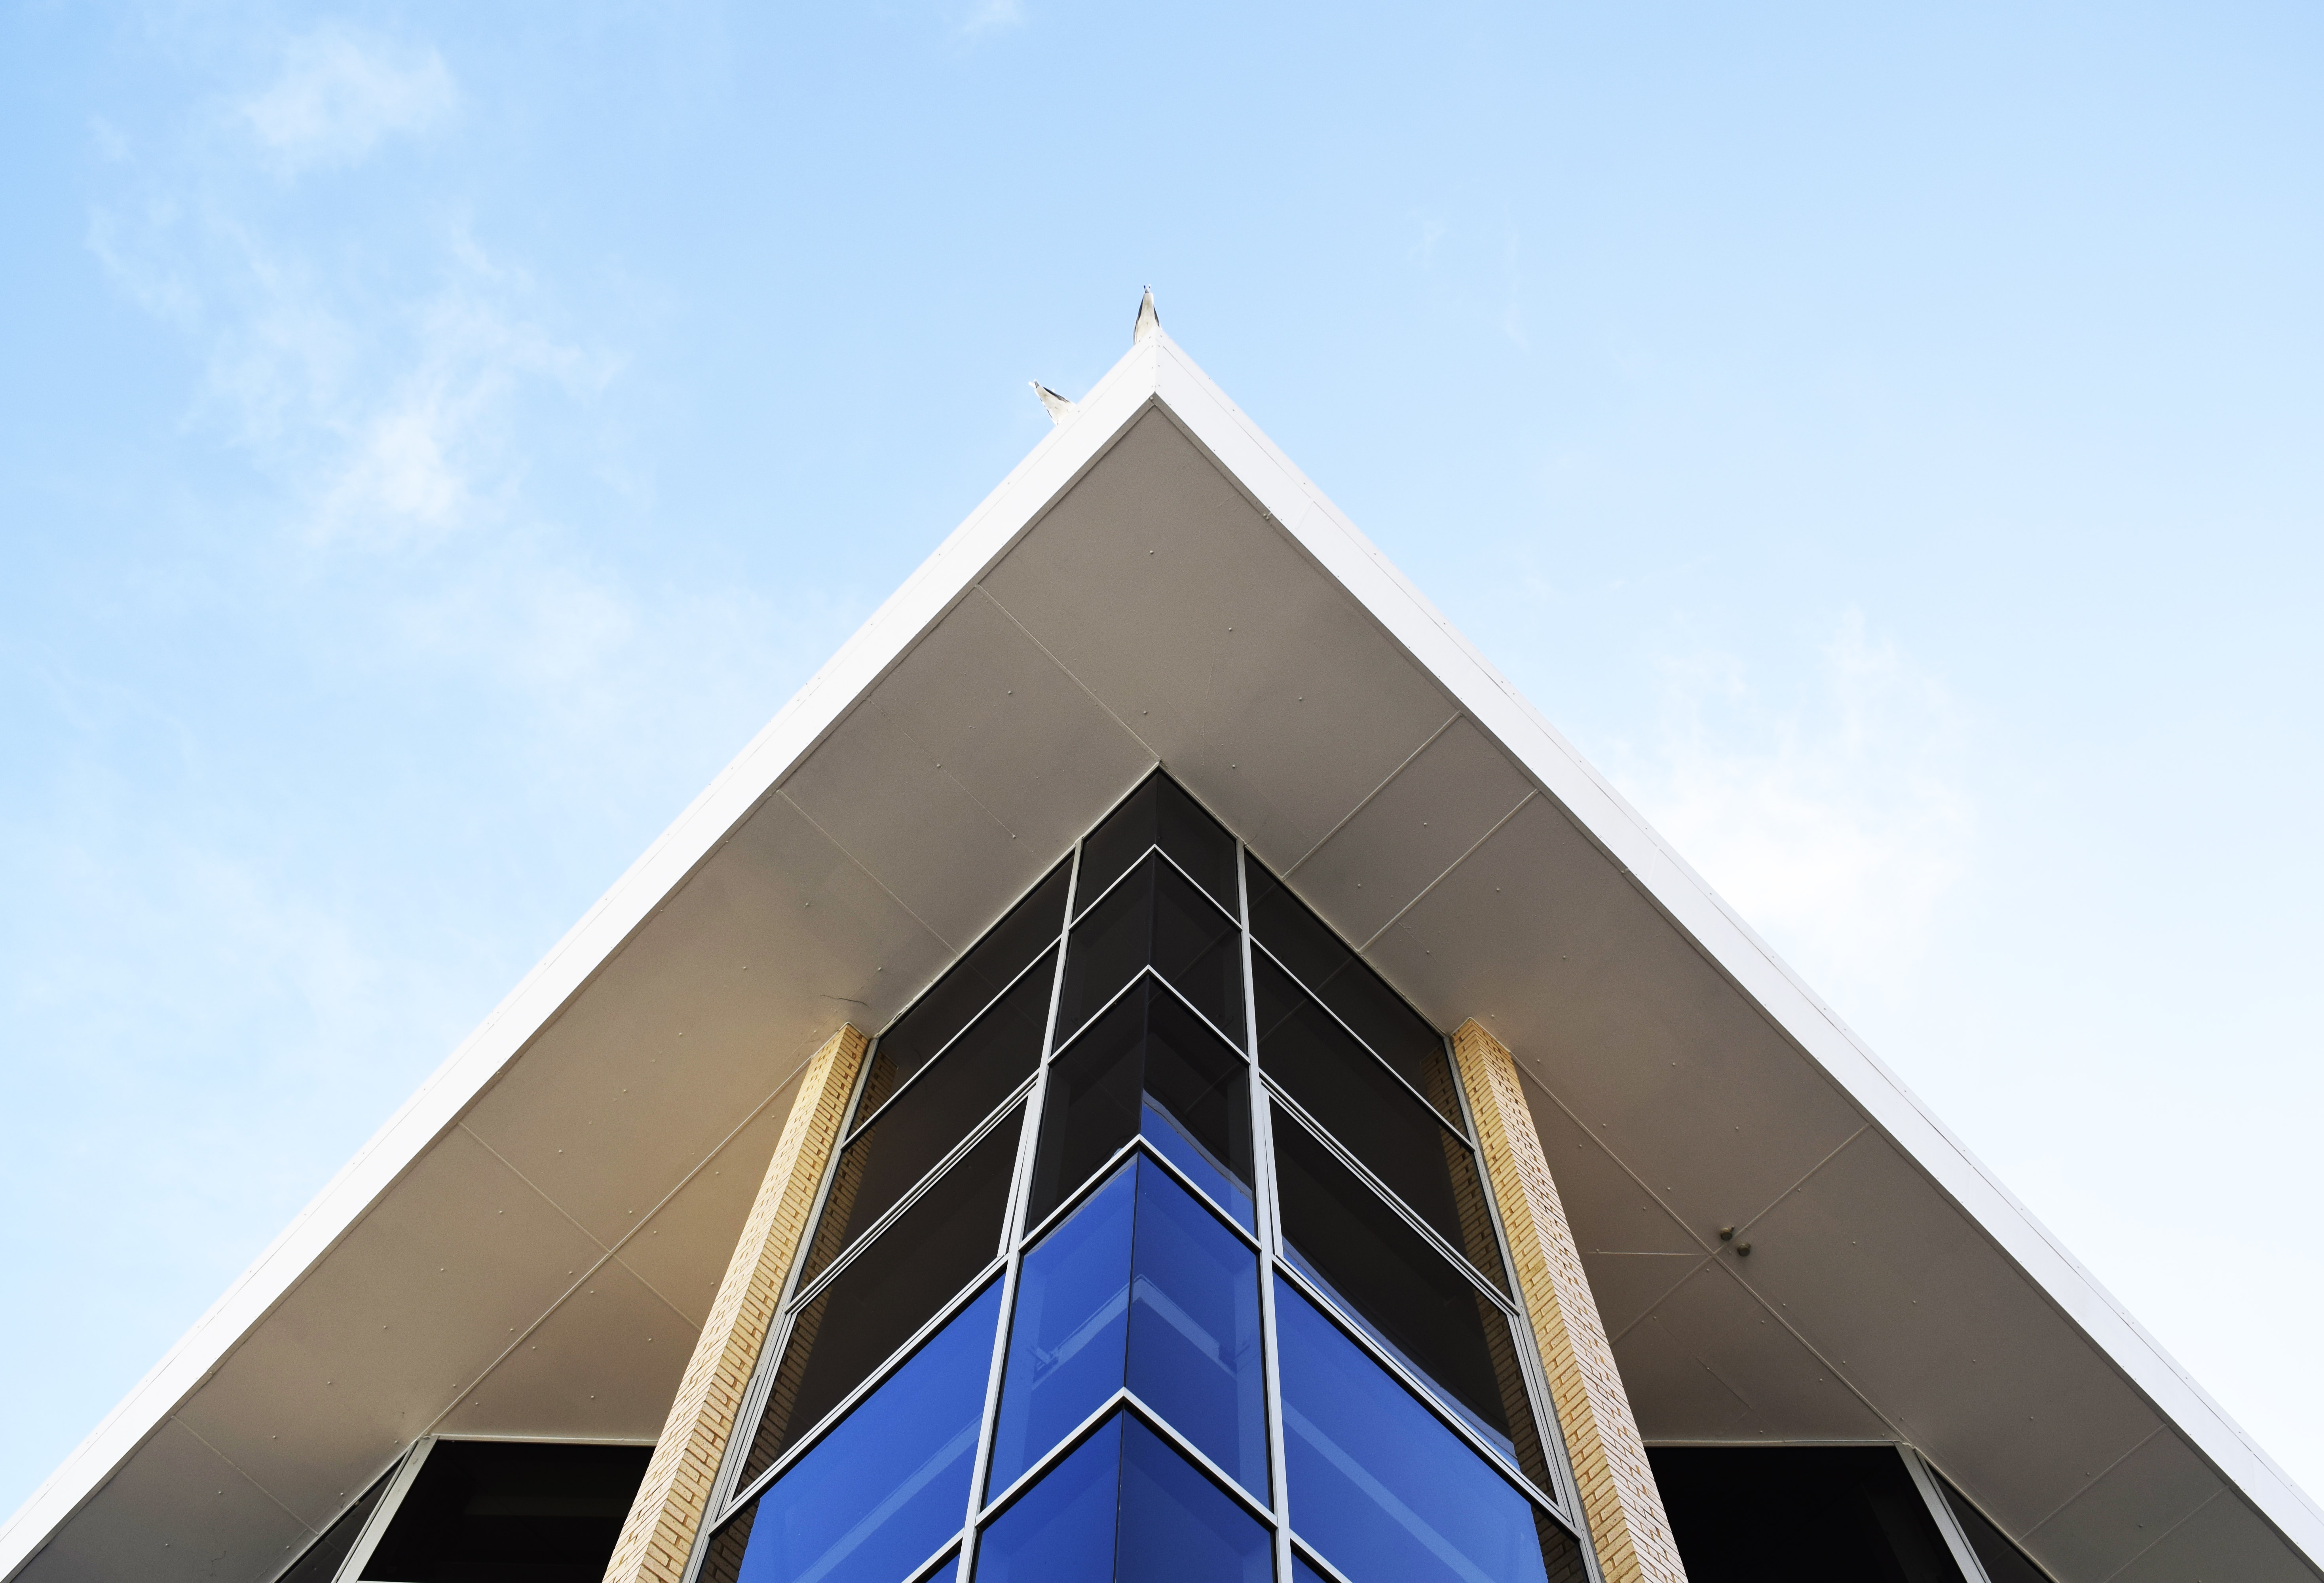 worm's eye view of building under clear blue sky